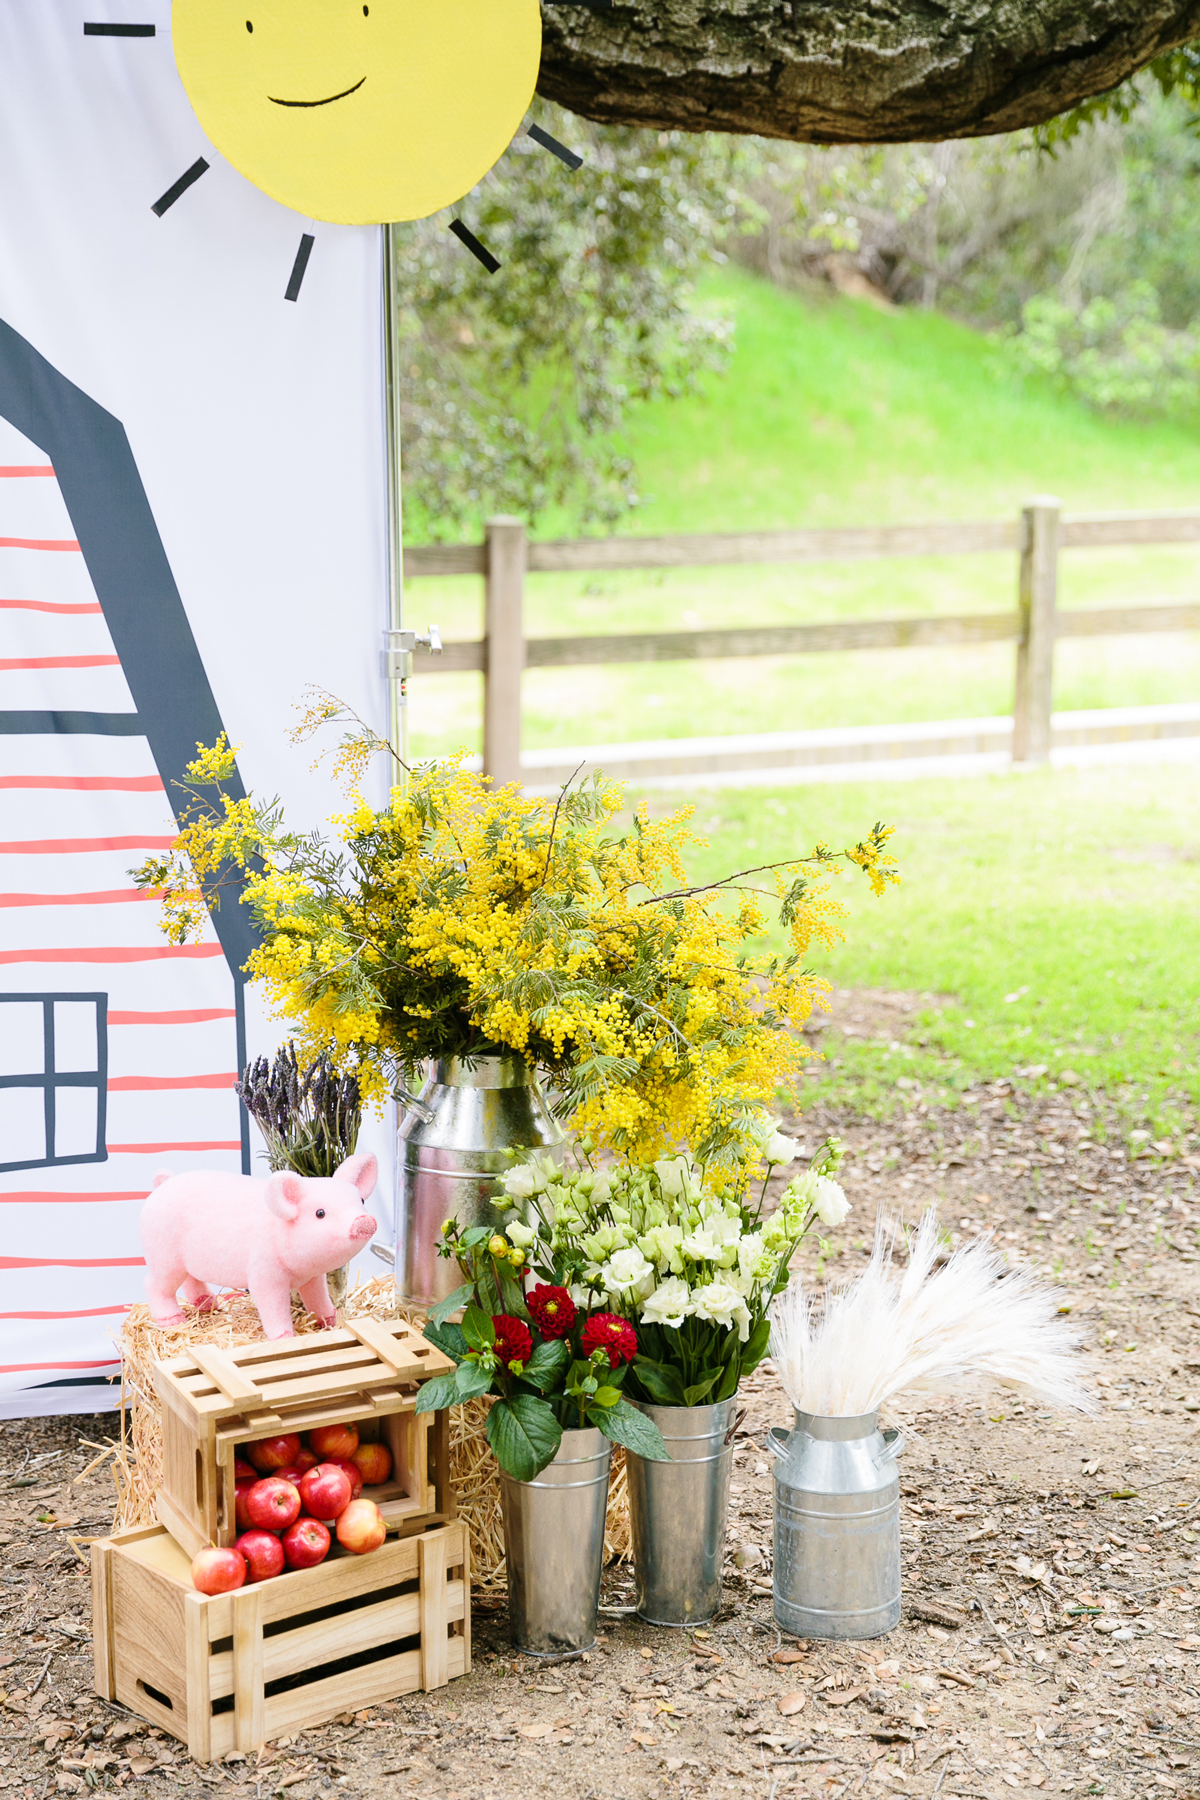 charlottes web childrens party outdoor photo booth with crate of apples and pig stuffed animal